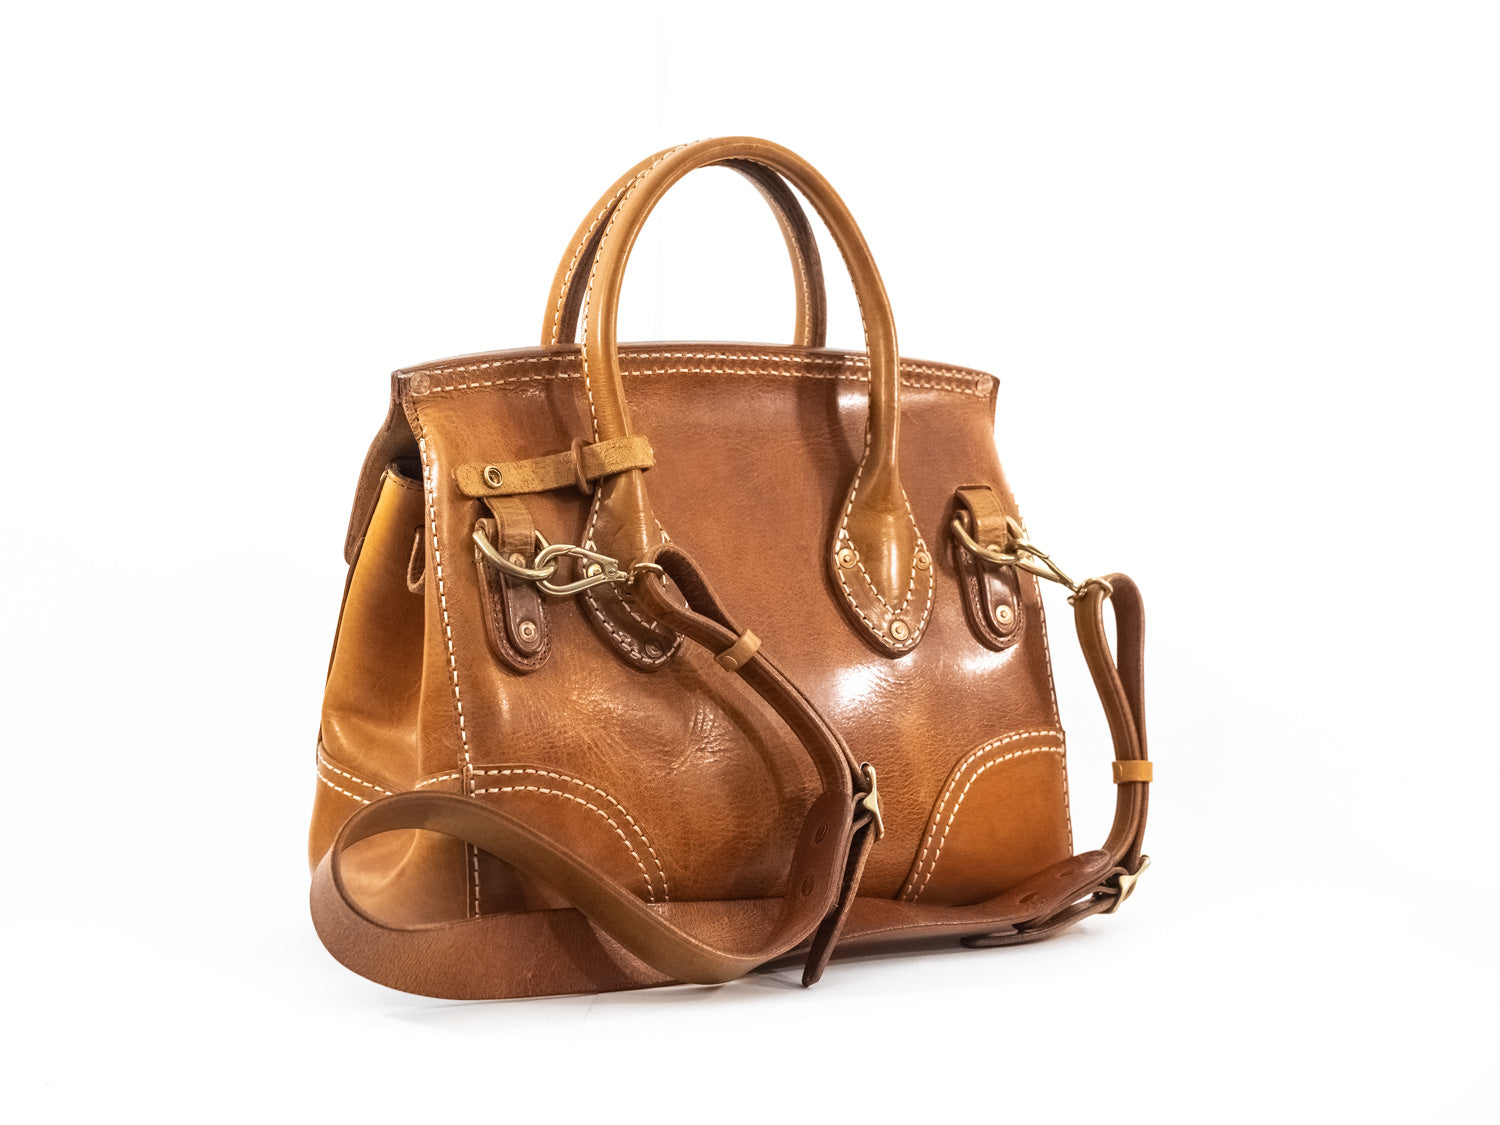 The Fiona Handbag